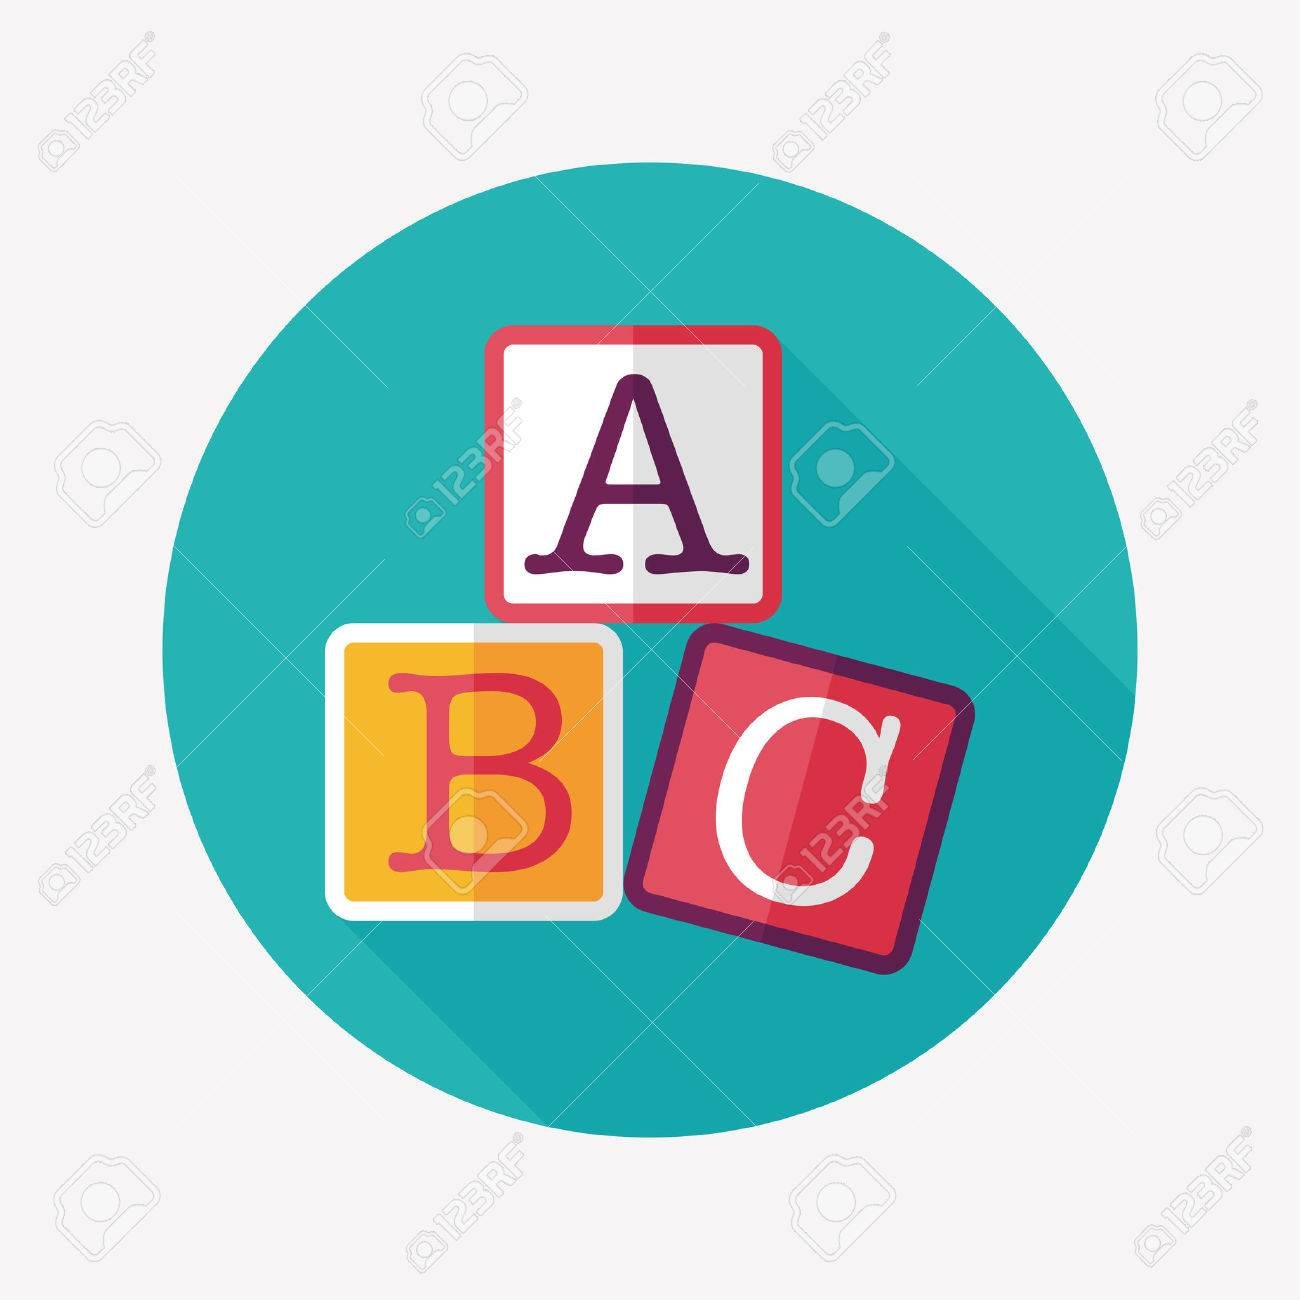 ABC blocks flat icon with long shadow,eps10 - 31675360